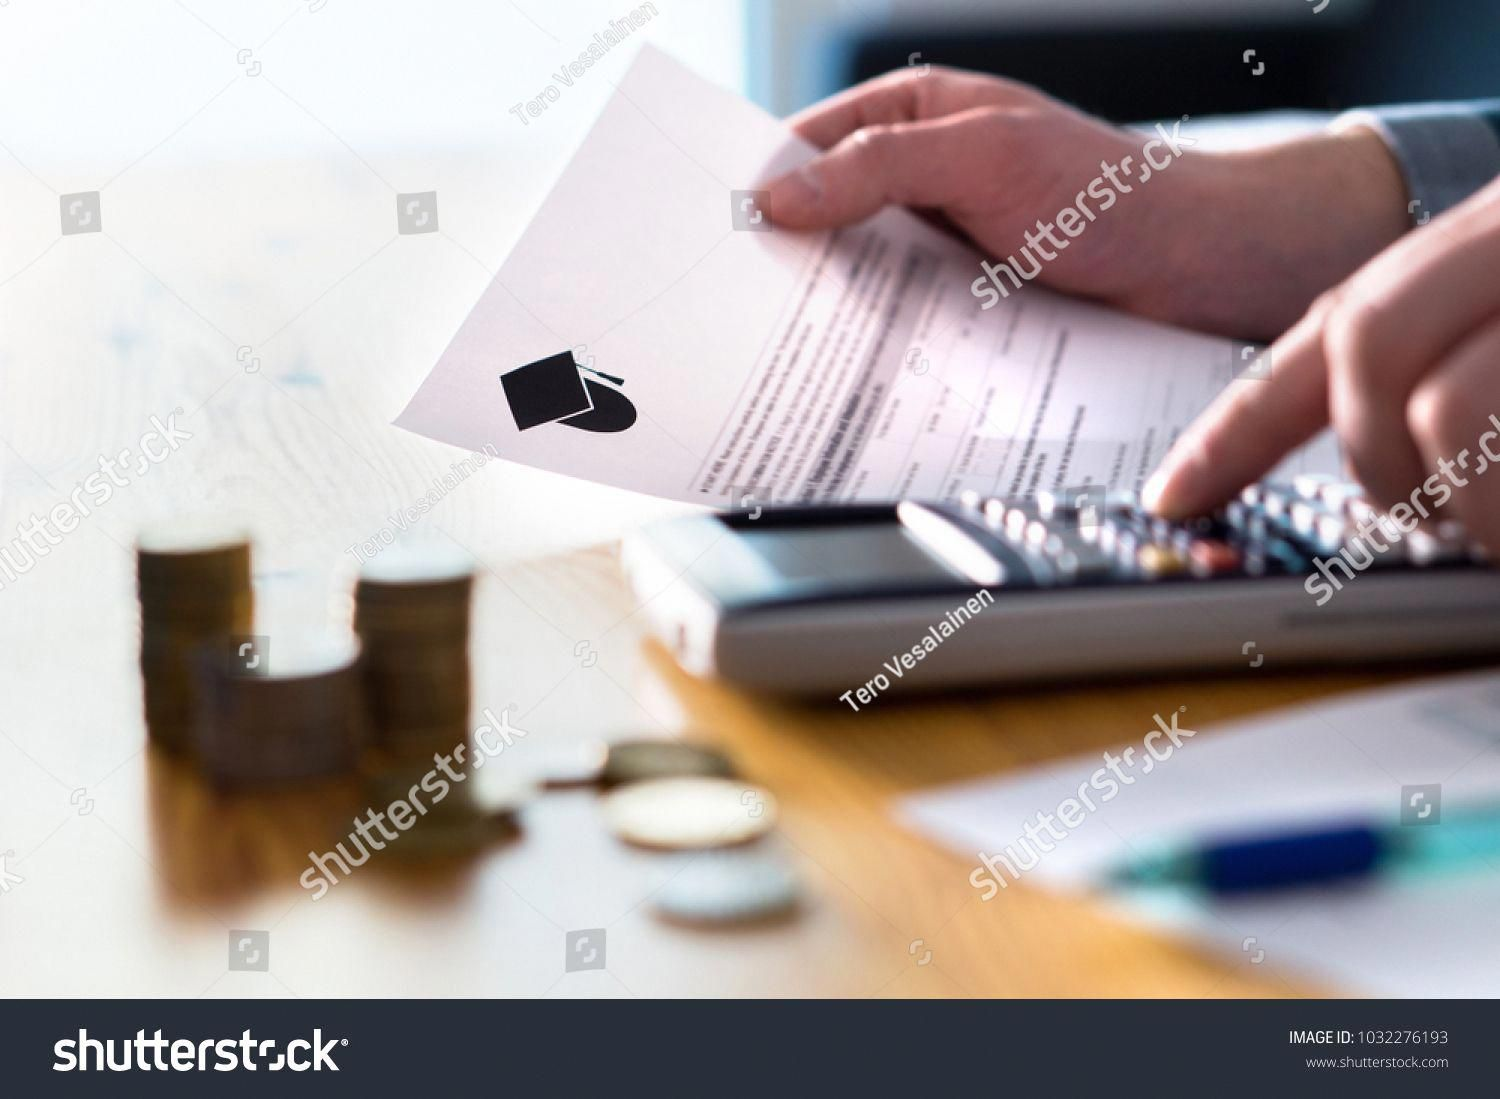 Man Counting College Savings Fund Tuition Fee Or Student Loan With Calculator Education Price And Expenses Co Tuition Student Saving For College Tuition Fees